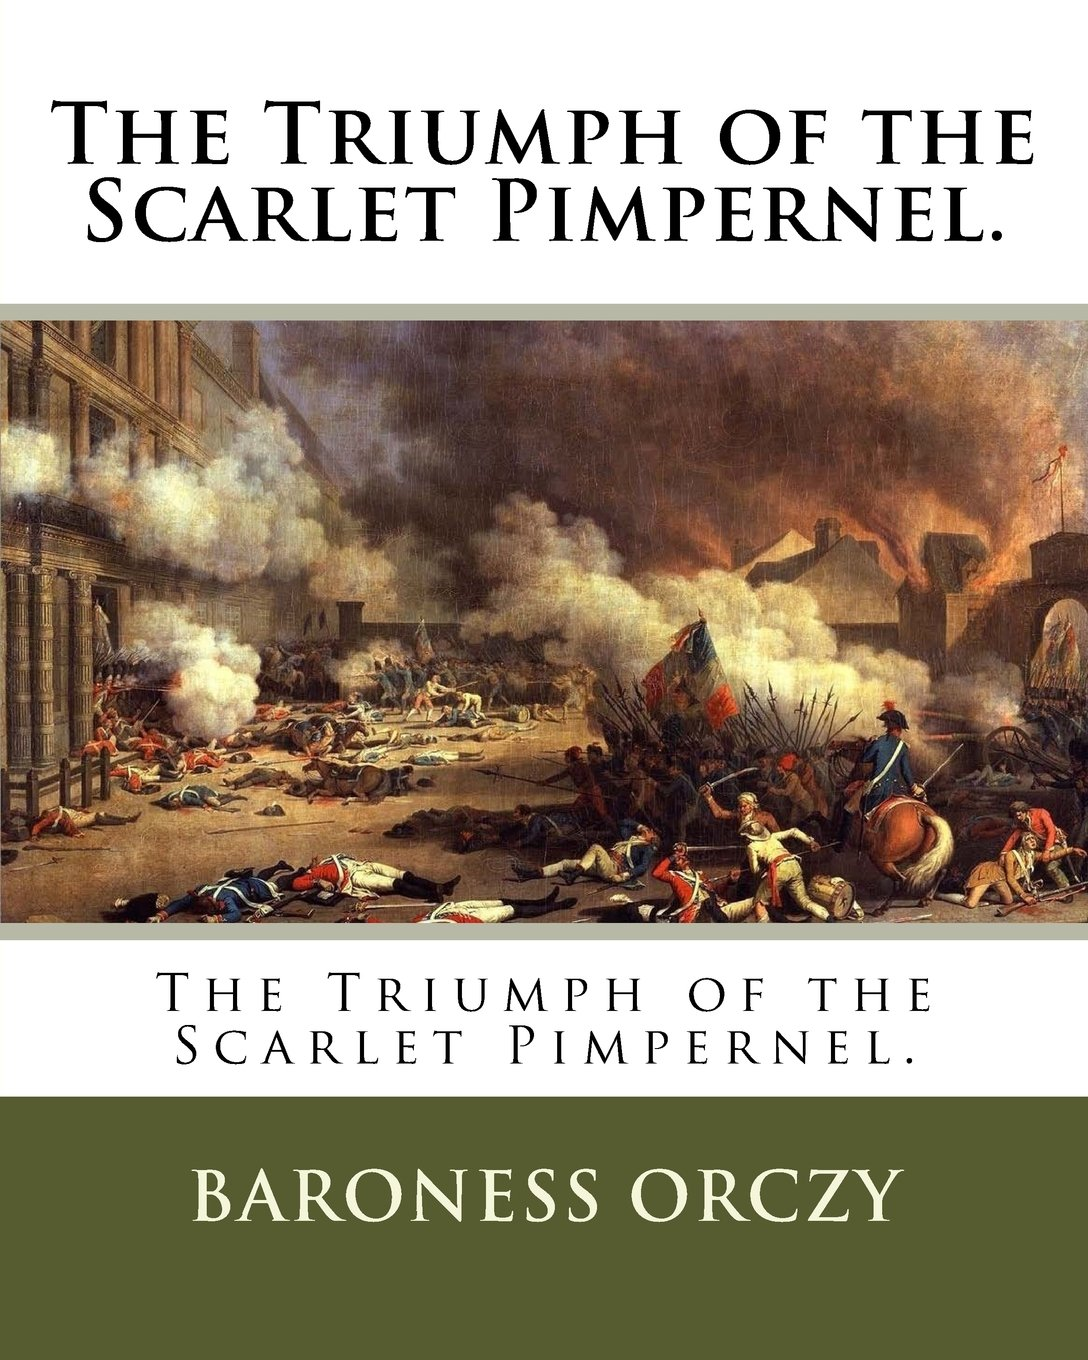 The Triumph of the Scarlet Pimpernel.